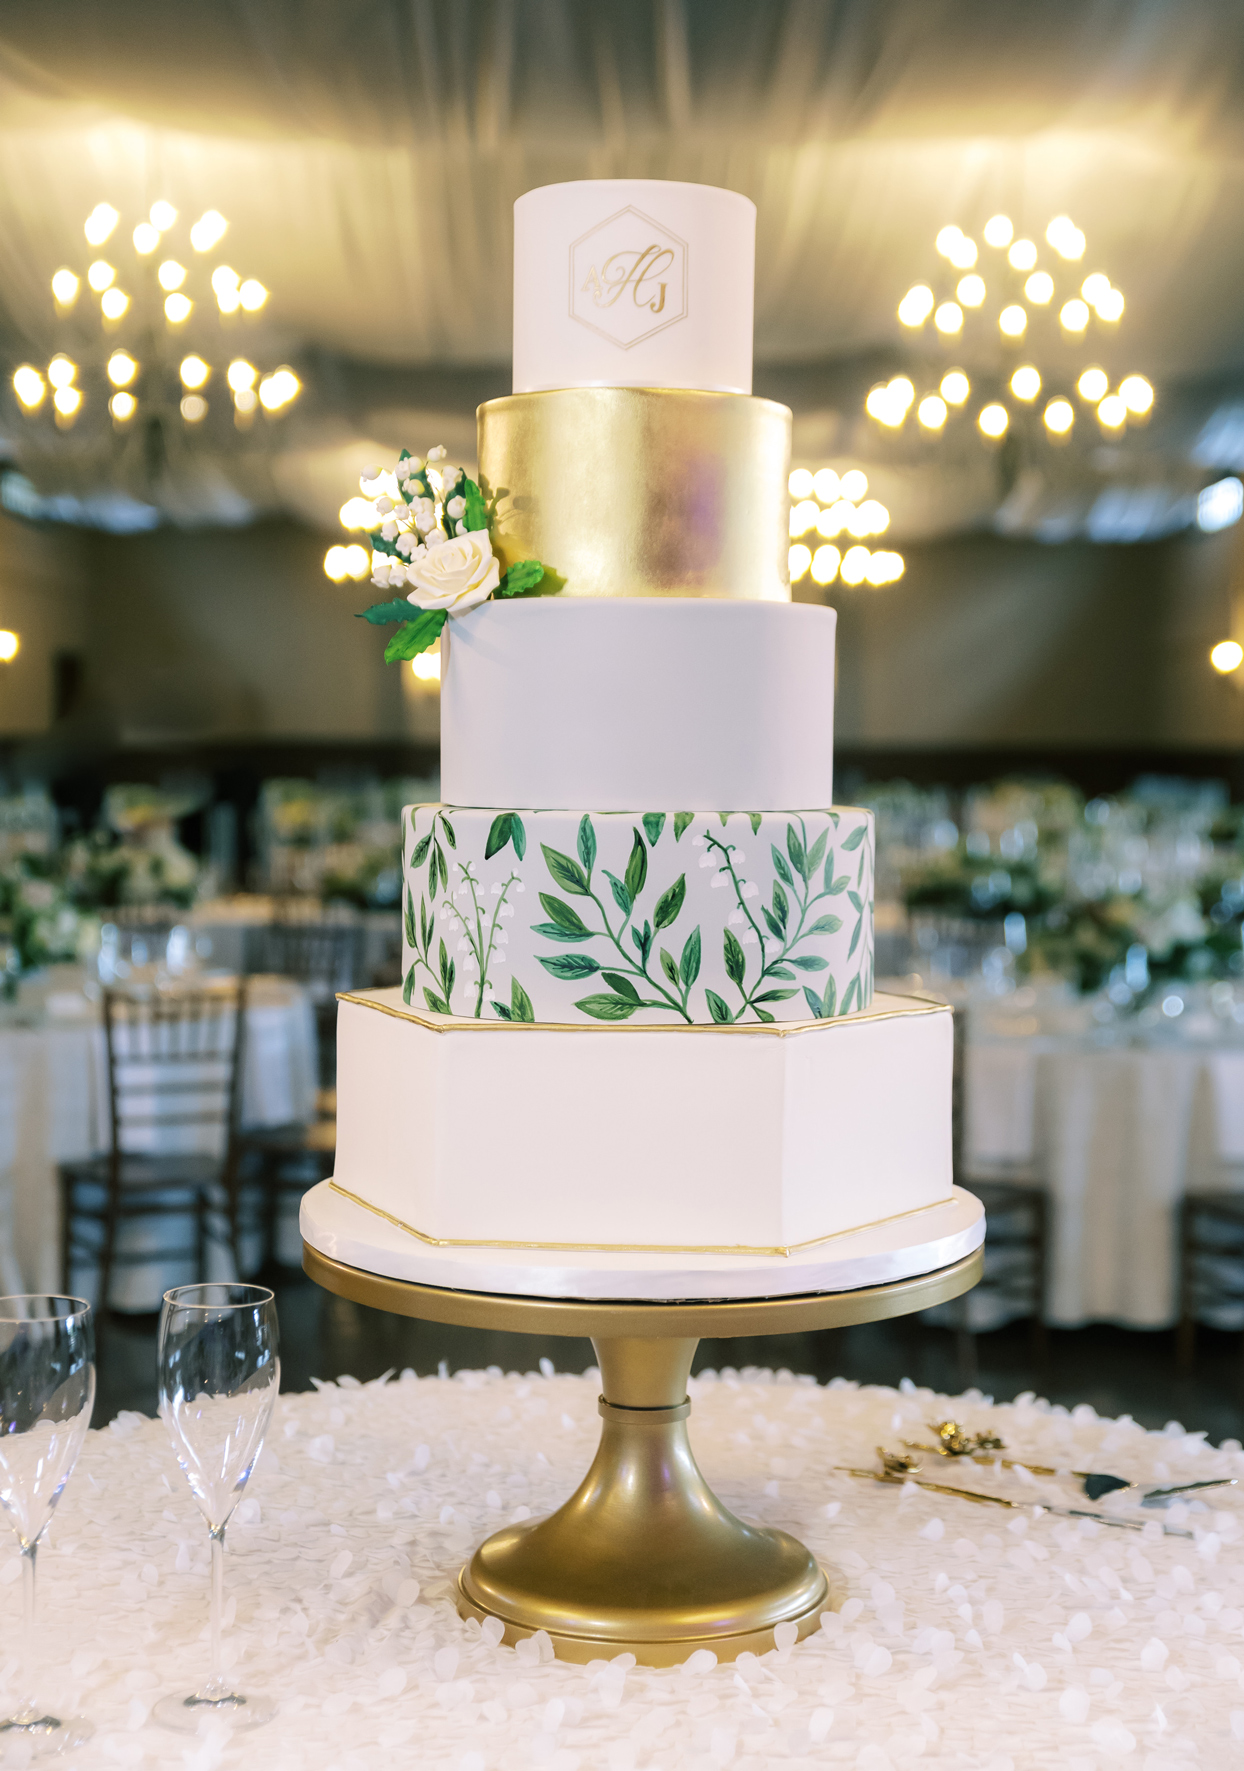 five tiered white and gold wedding cake with greenery accent